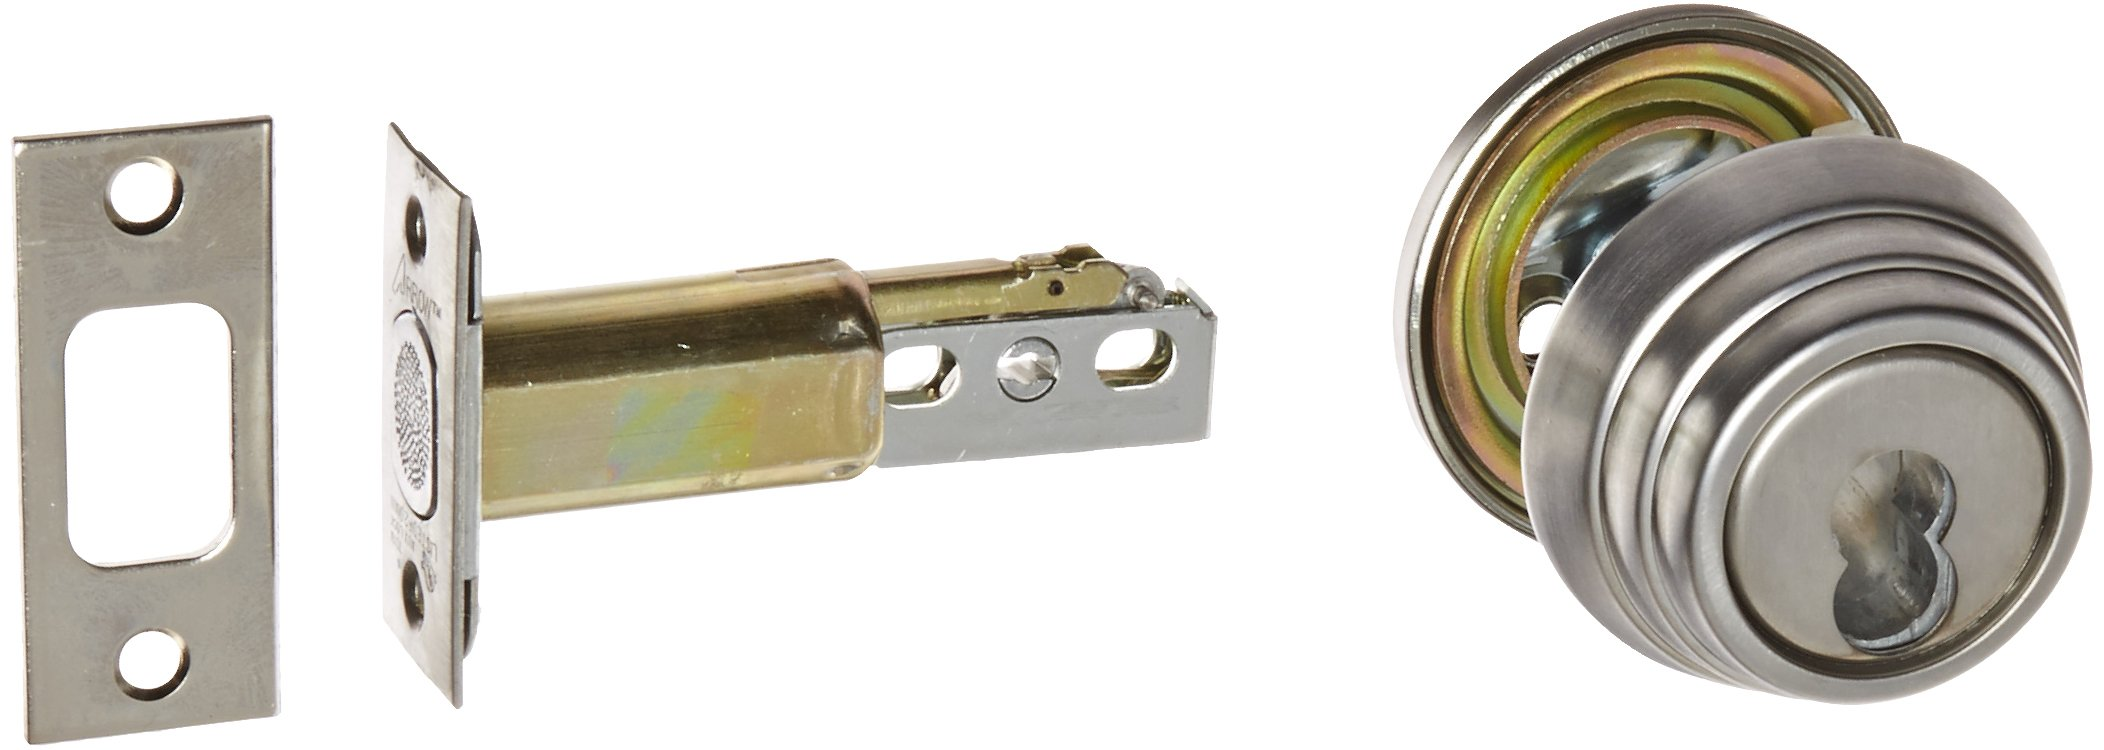 1-3//8 to 1-3//4 Door Thickness Arrow Lock E Series Satin Chromium Occupancy Indicator Deadbolt Auxiliary Lock with Interchangeable Core Pack of 1